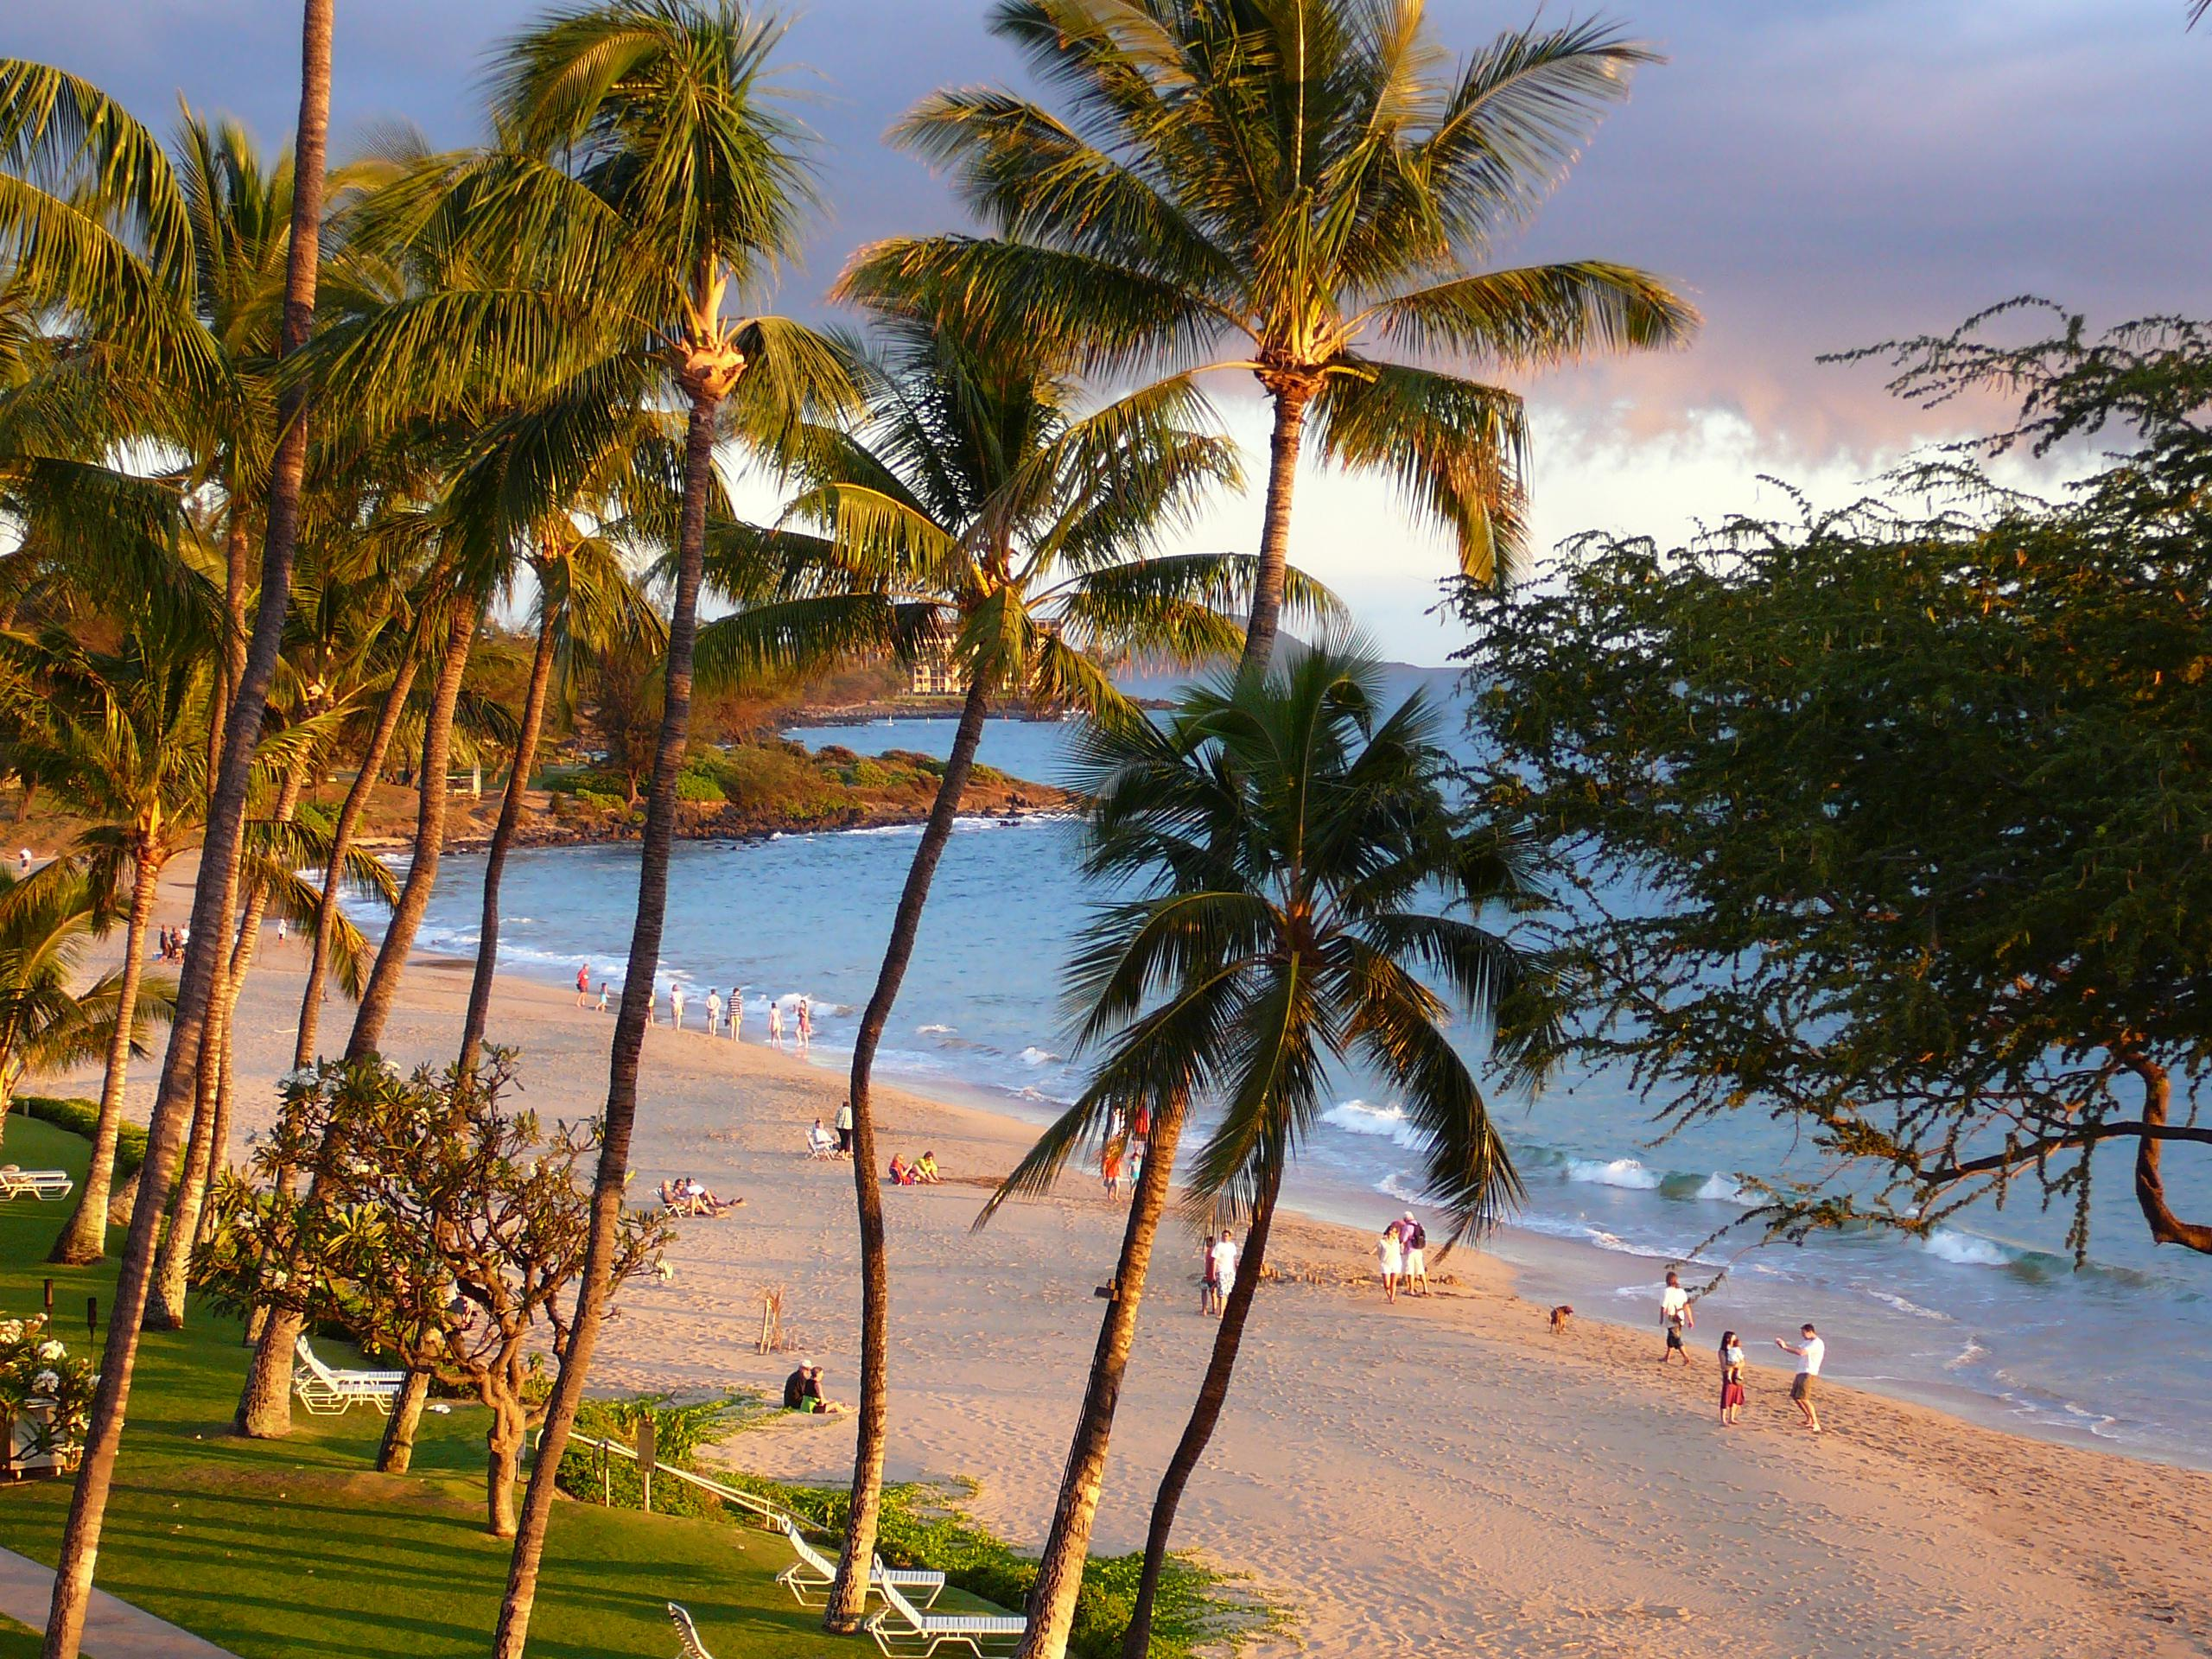 "Maui Kihei Shore<br />Photo <a href=""//creativecommons.org/licences/by-sa/3.0/"" class=""cc-small"" target=""_blank""><img typeof=""foaf:Image"" class=""image-style-none"" src=""https://i.creativecommons.org/l/by-sa/3.0/80x15.png"" width=""80px"" height=""15px"" alt=""Creative Commons Licence"" /></a> <a href=""http://www.flickr.com/photos/49295397@N00/2637985110"">Stephen Walli</a>"